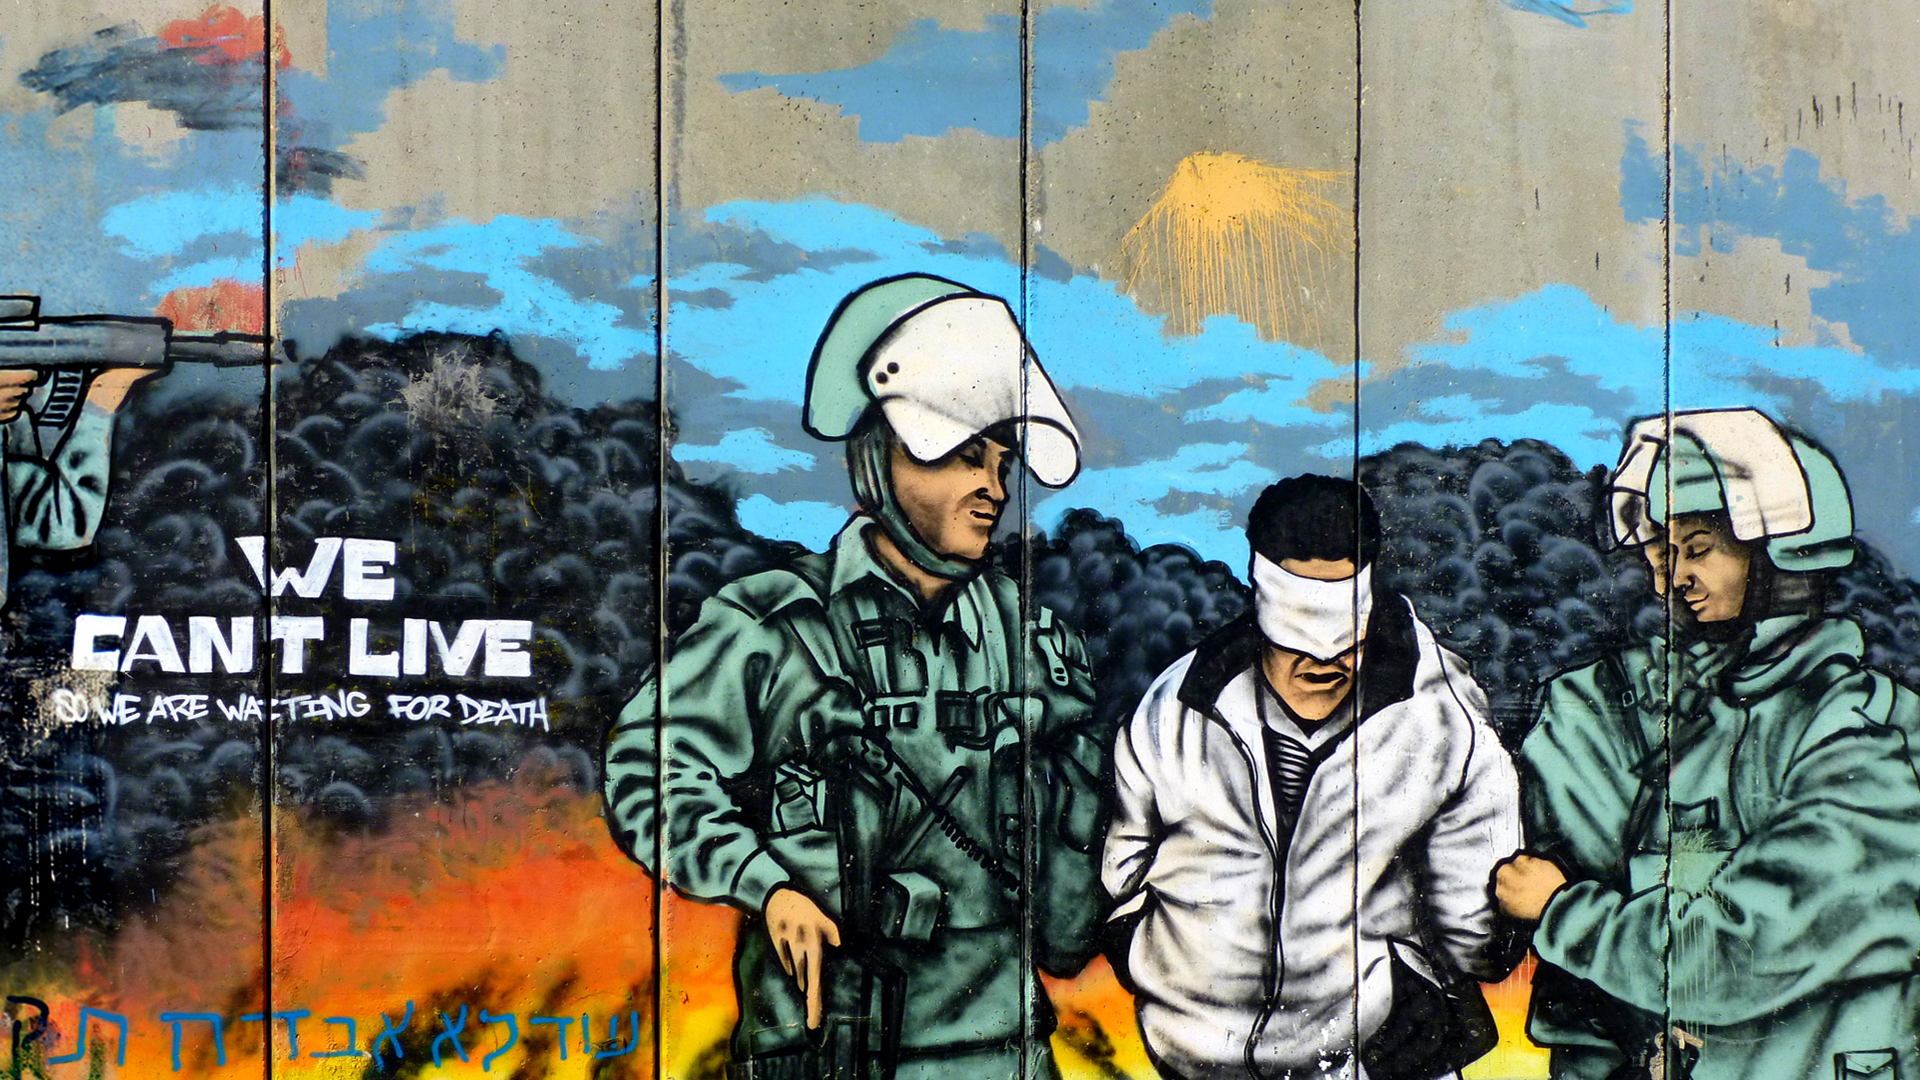 Graffiti on the Palestinian side of the West Bank